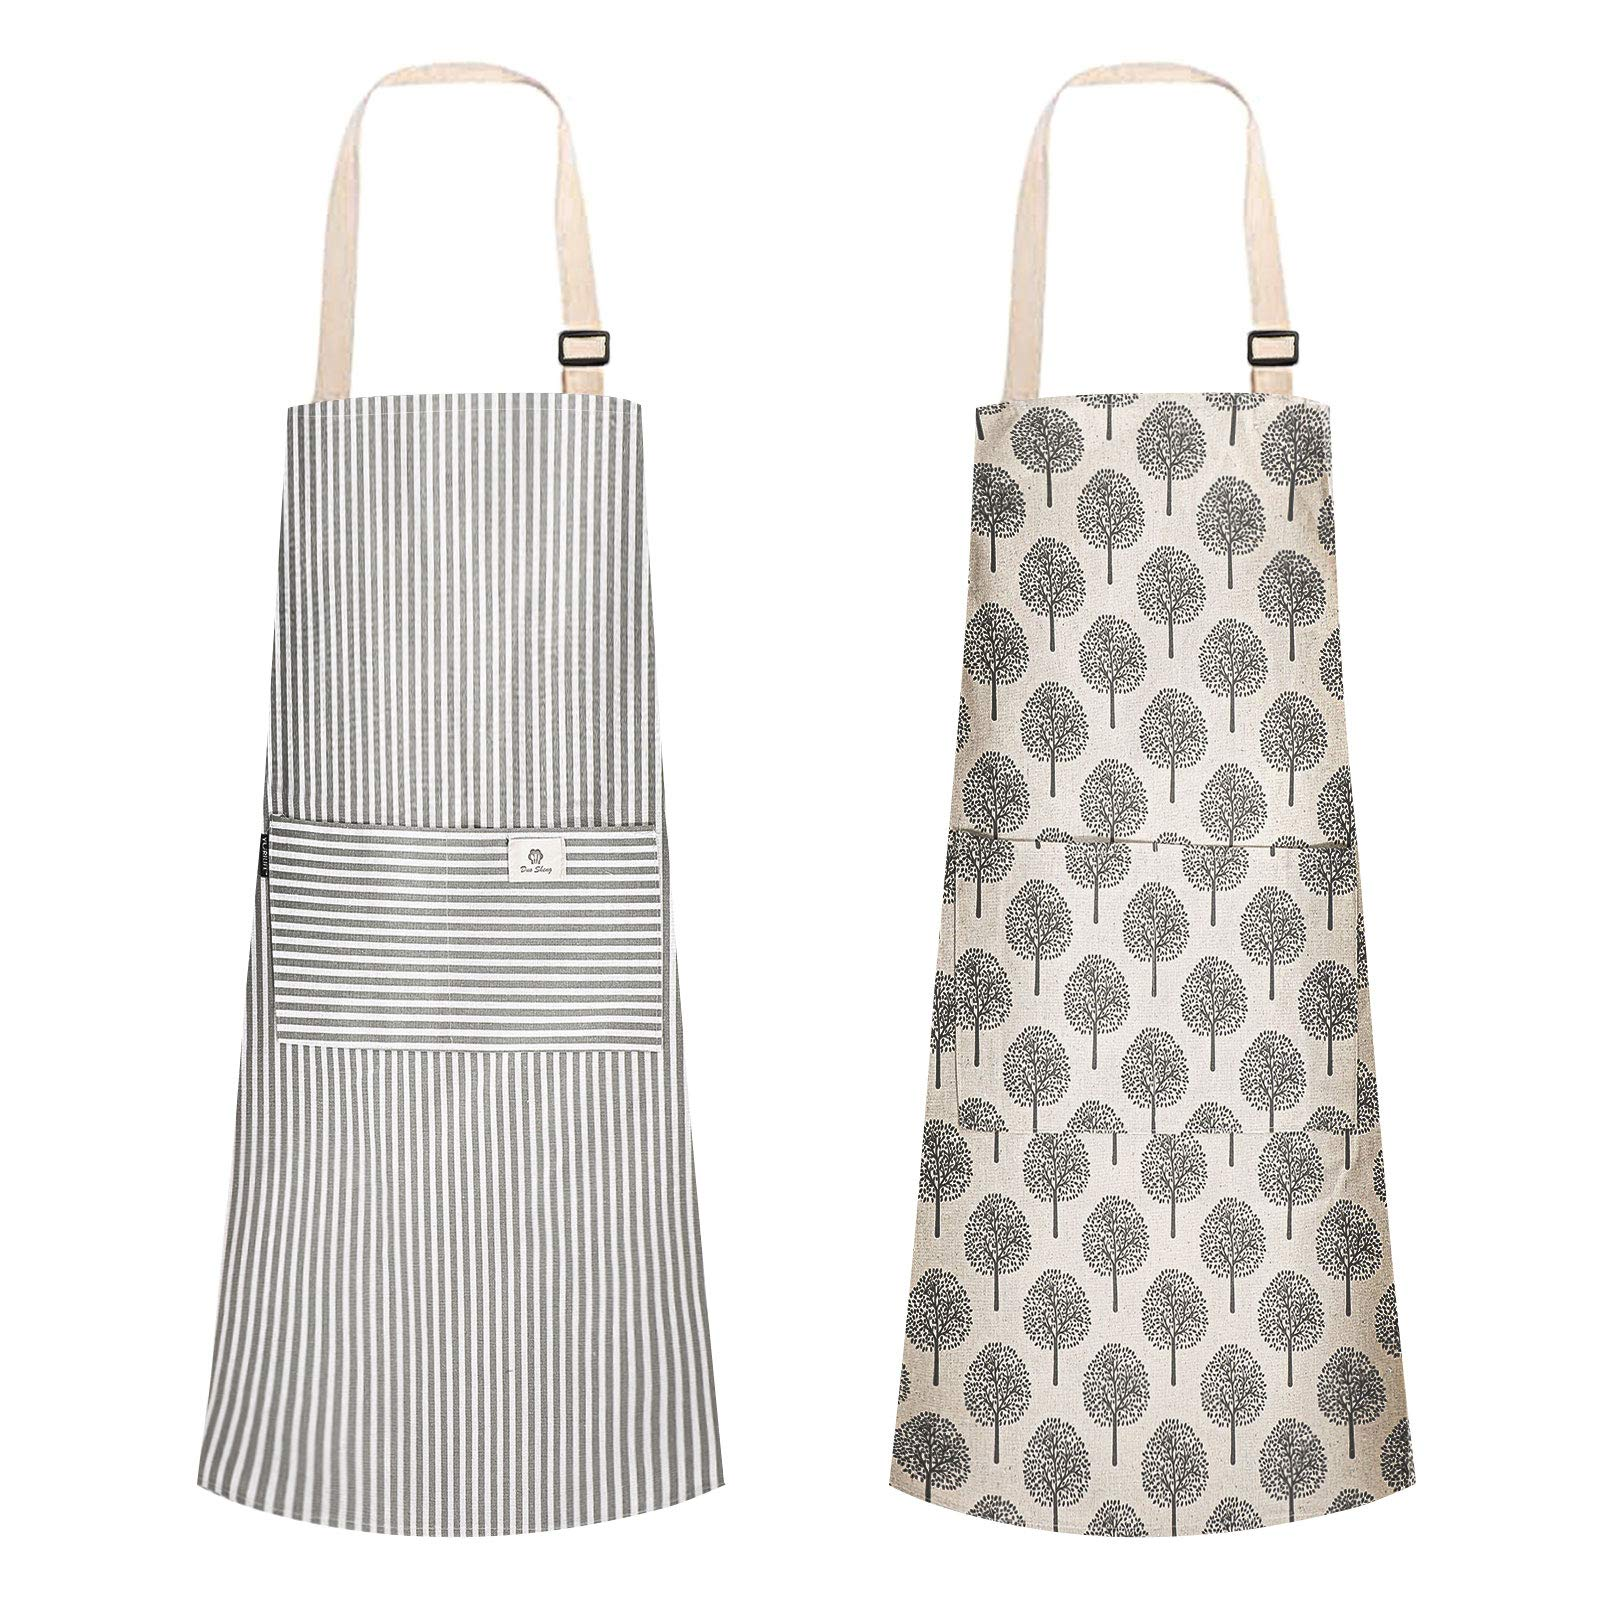 Urijk Aprons for Women Men,2 Pieces Cooking Apron Adjustable Kitchen Apron Soft Chef Apron apron for women with 2 Pockets